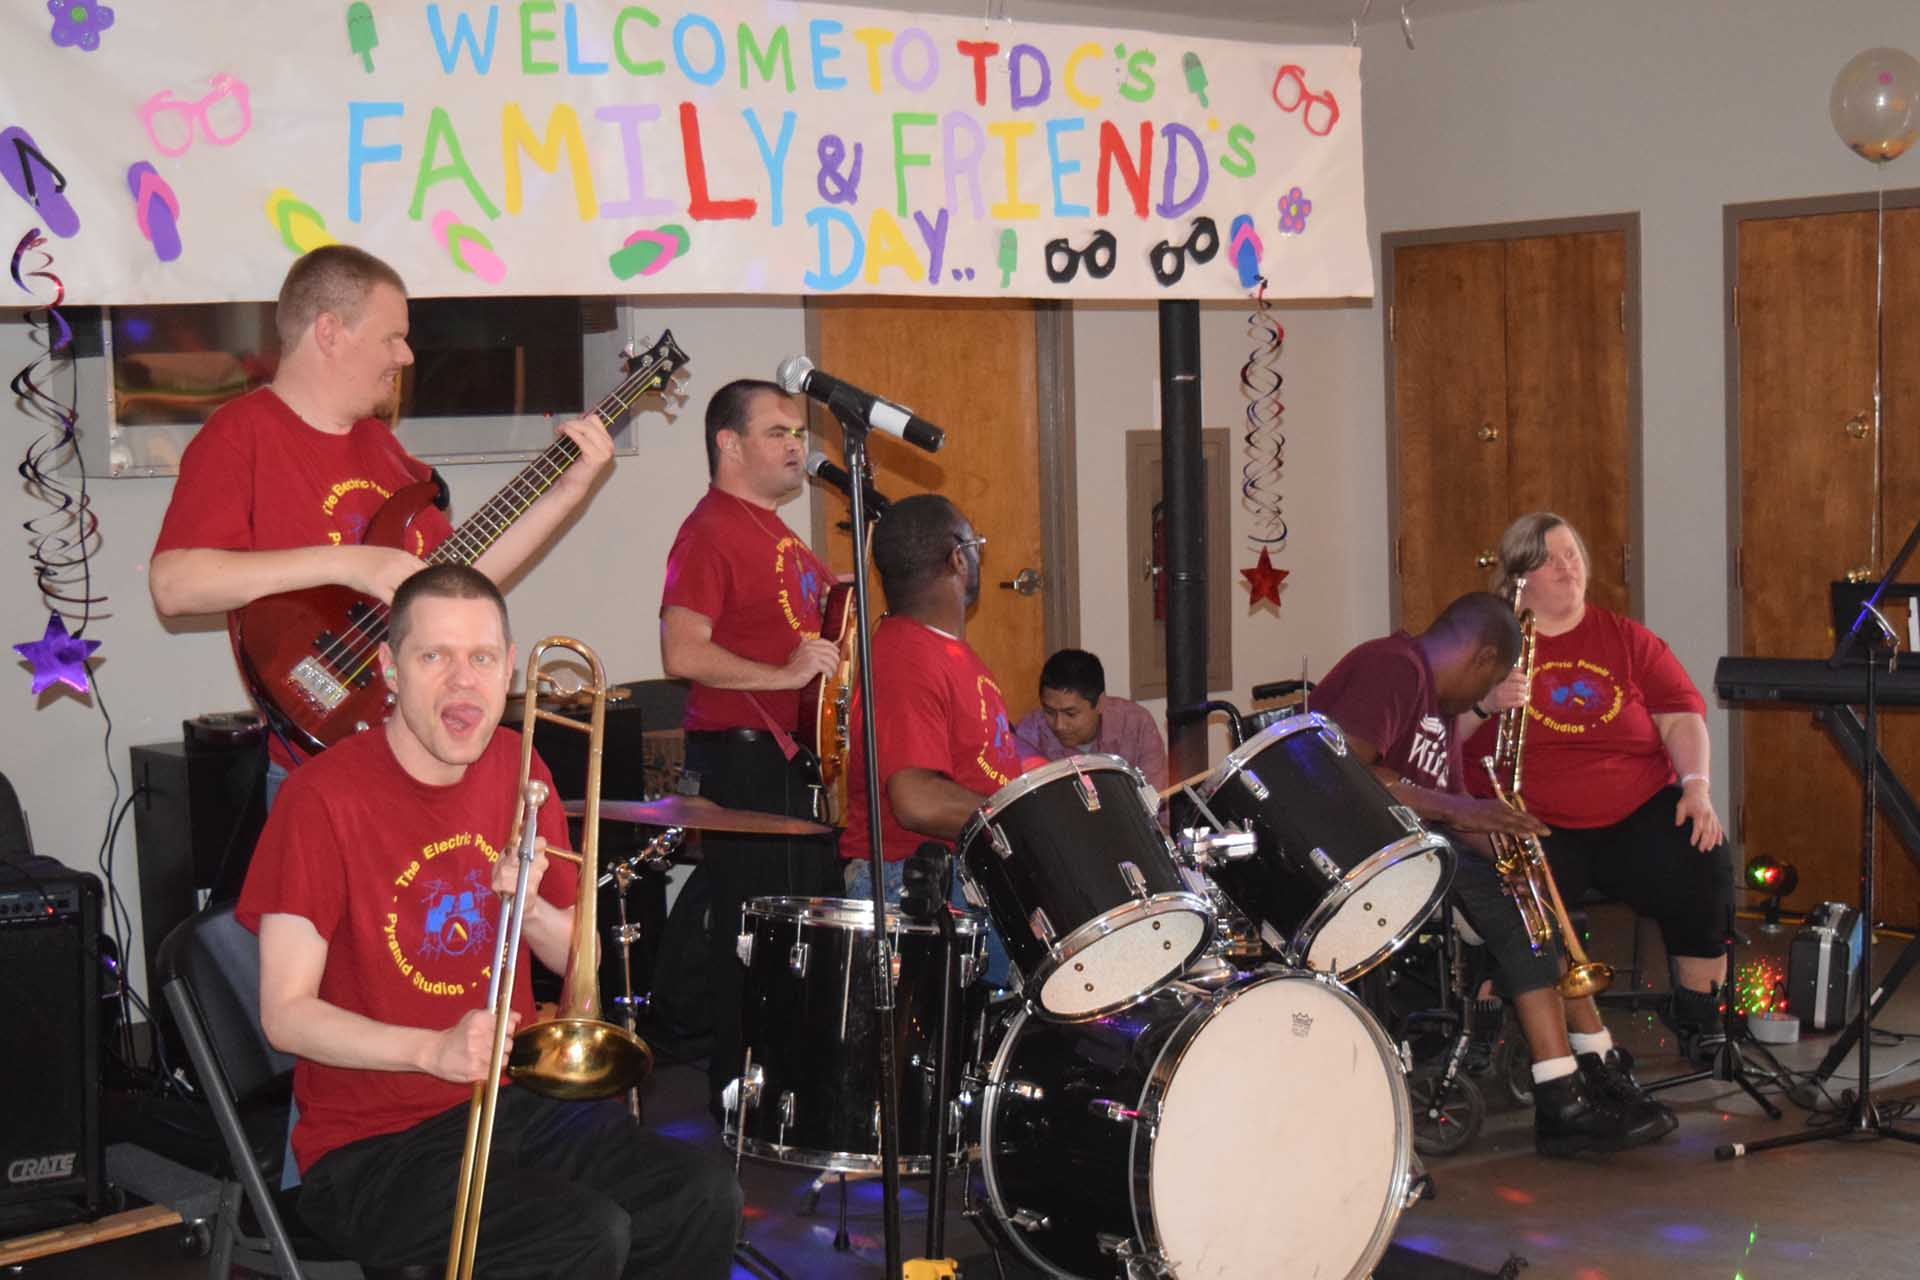 Care Members playing in a band